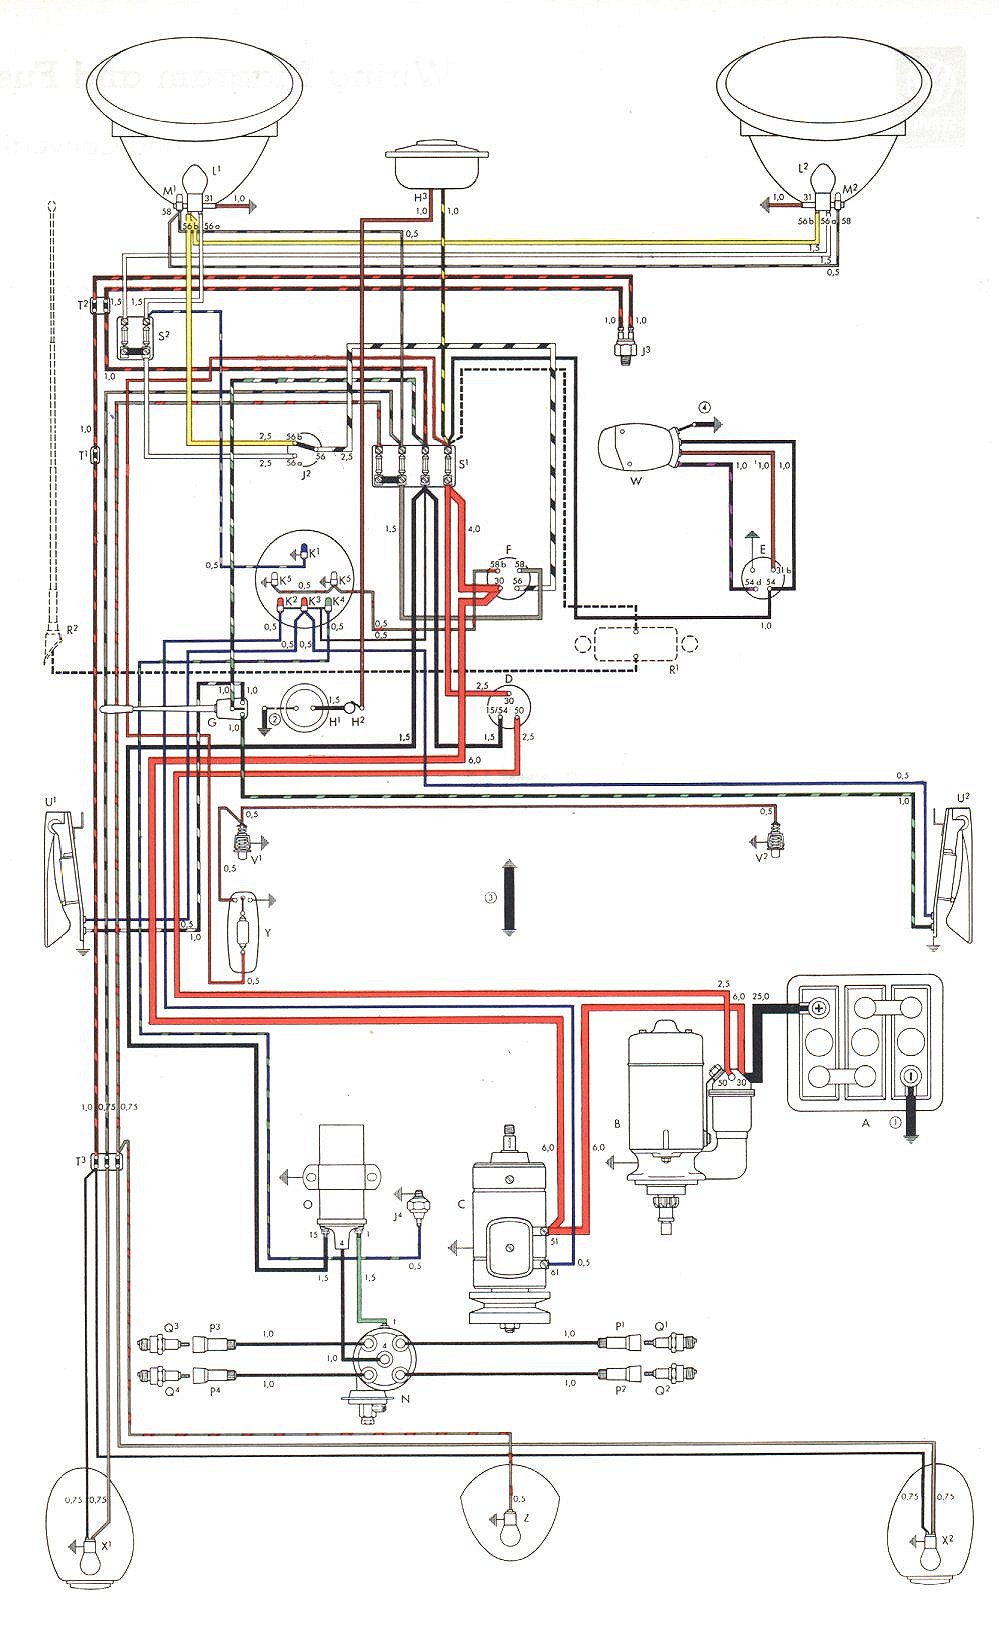 bug 58+59 euro vw wiring diagrams 1971 volkswagen super beetle wiring diagram at panicattacktreatment.co